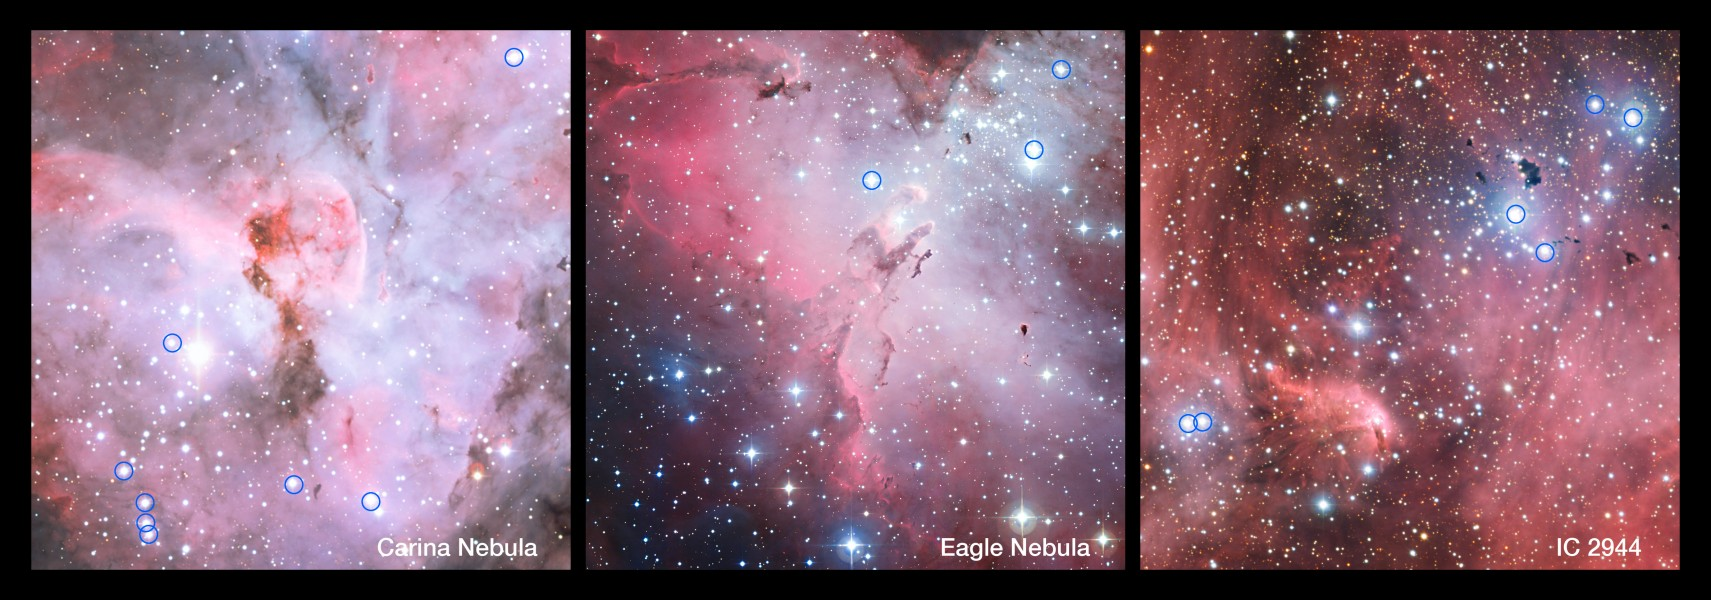 Hot and brilliant O stars in star-forming regions